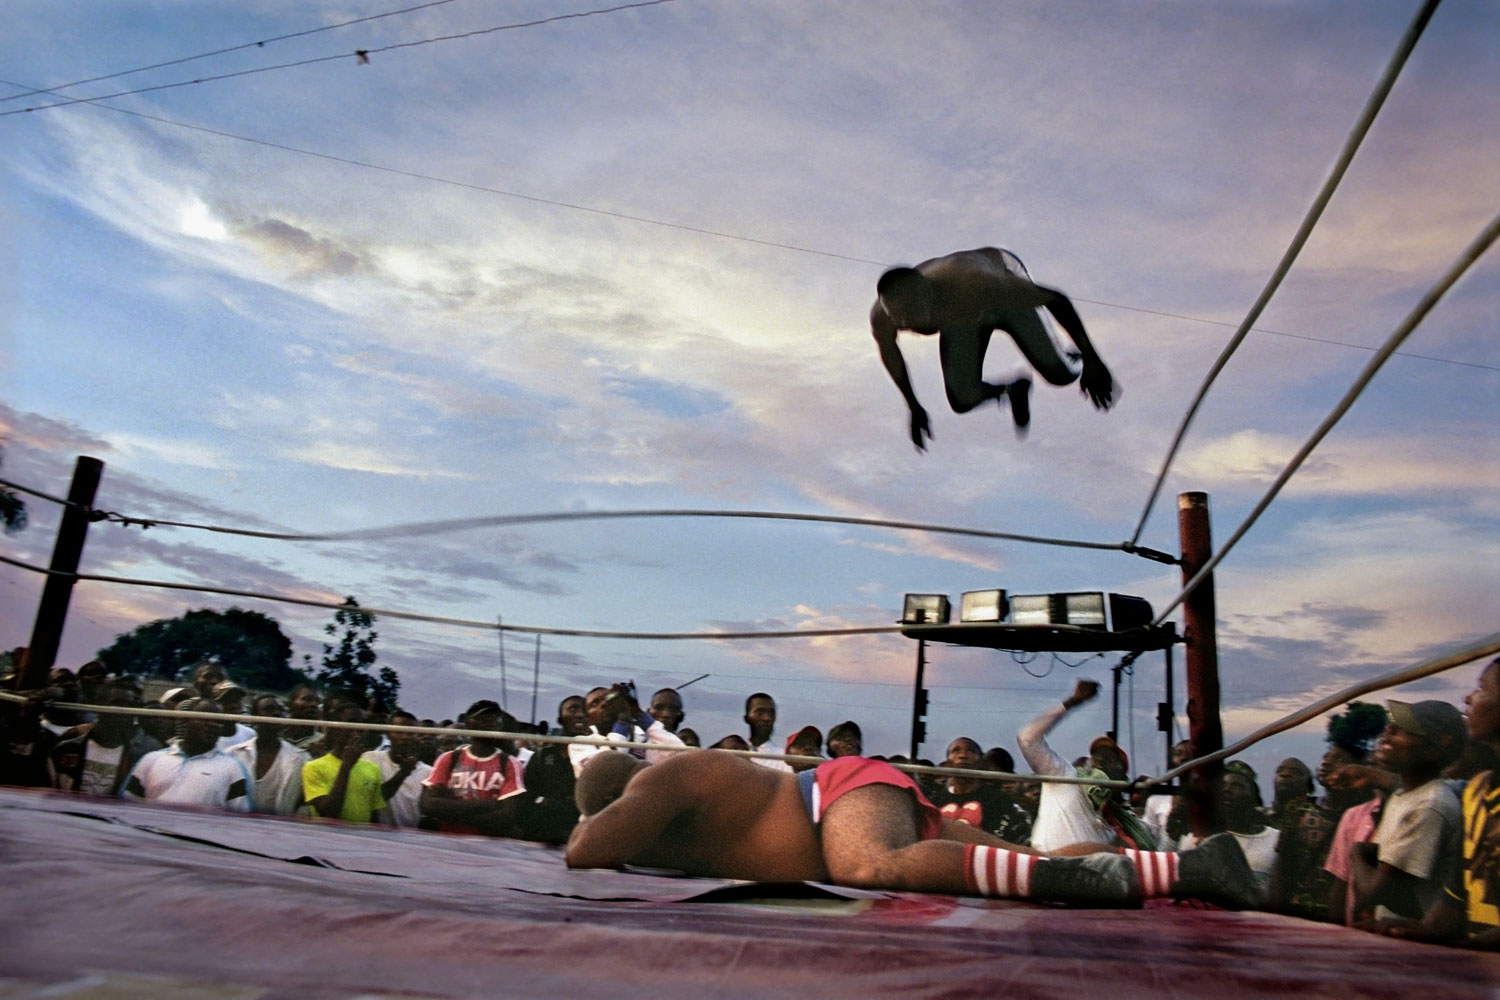 The fights are usually held outdoors, in open spaces, and draw crowds of anywhere from a few dozen to several hundred fans.